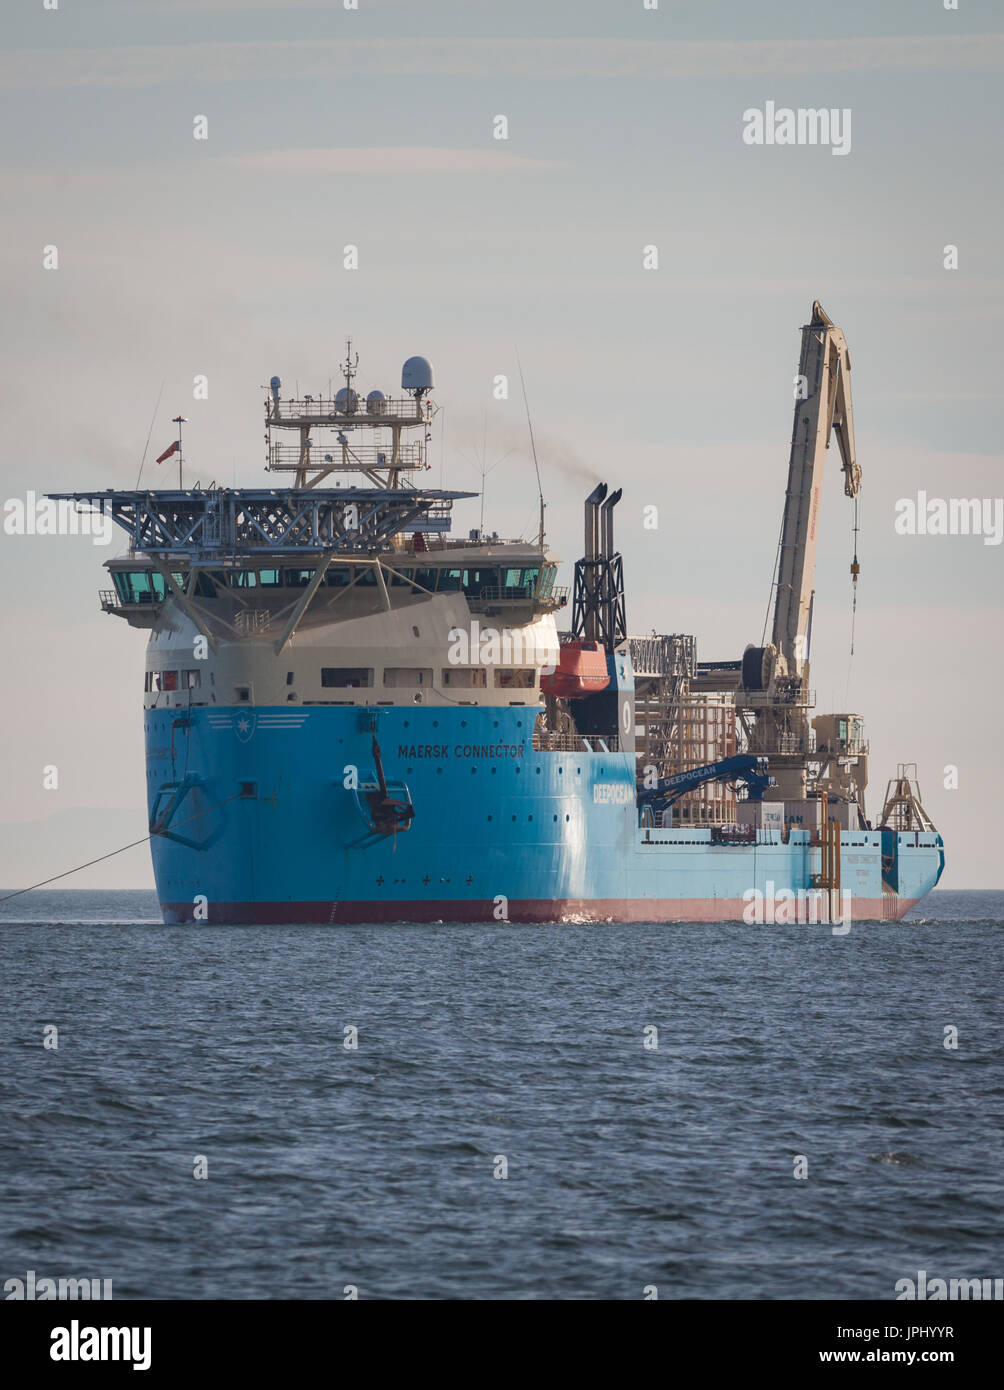 The cable lay vessel, Maersk Connector, installing the Walney 3 export cable. The wind farm will become part of the world's largest offshore wind farm, and is located off the coast of Cumbria, UK - Stock Image